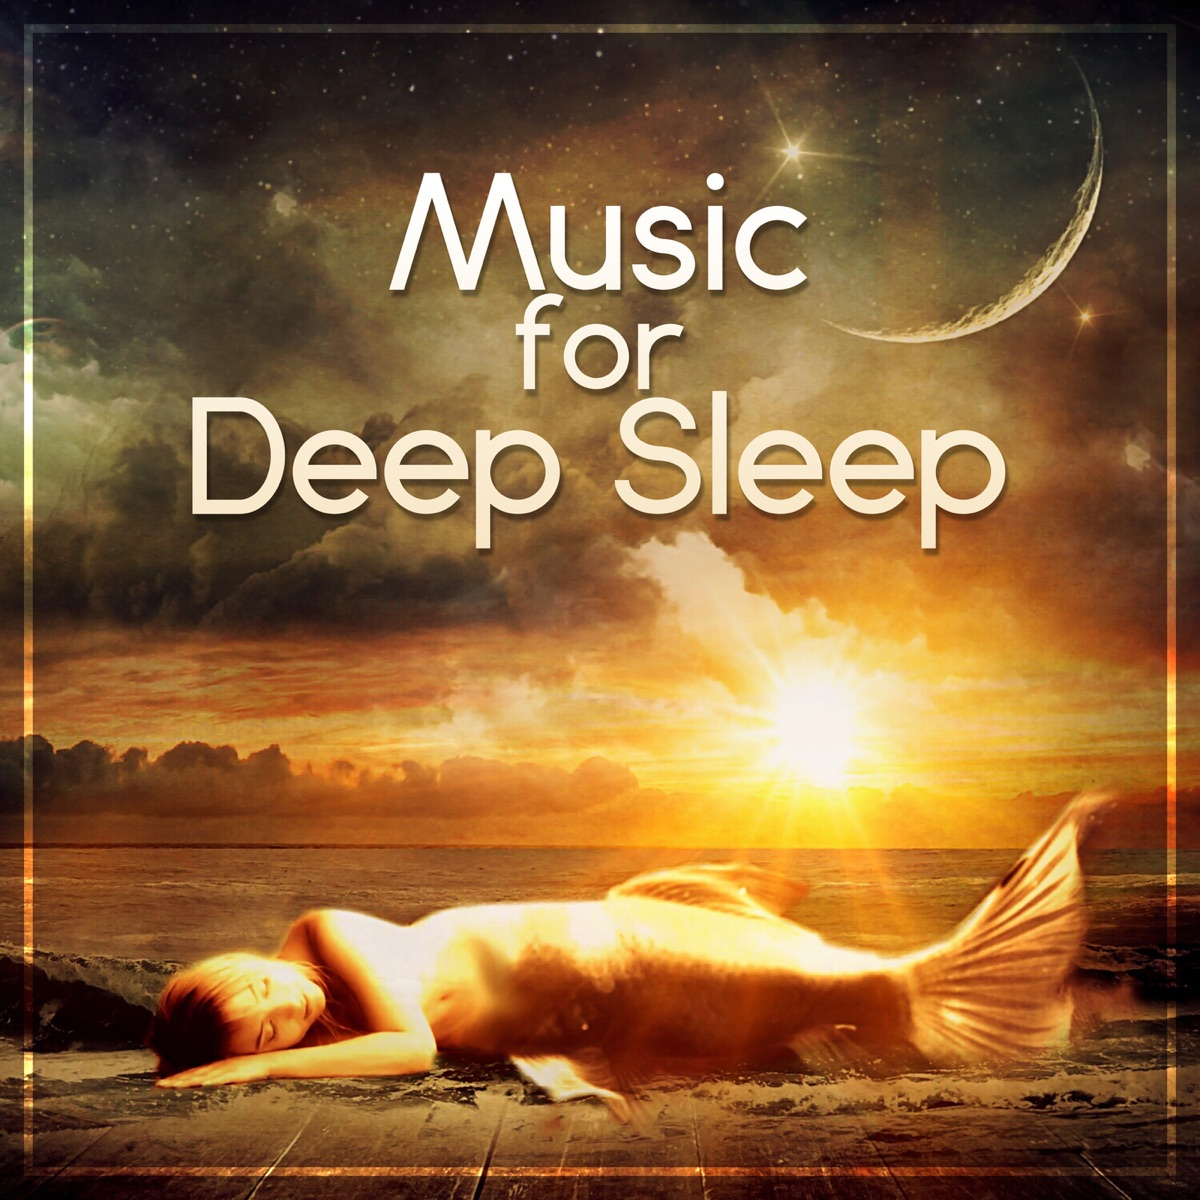 Music for Deep Sleep Vol. 2: Restful Zen Sound Therapy at Night, Bed Time Sleep Aid, New Age Meditation Lullabies